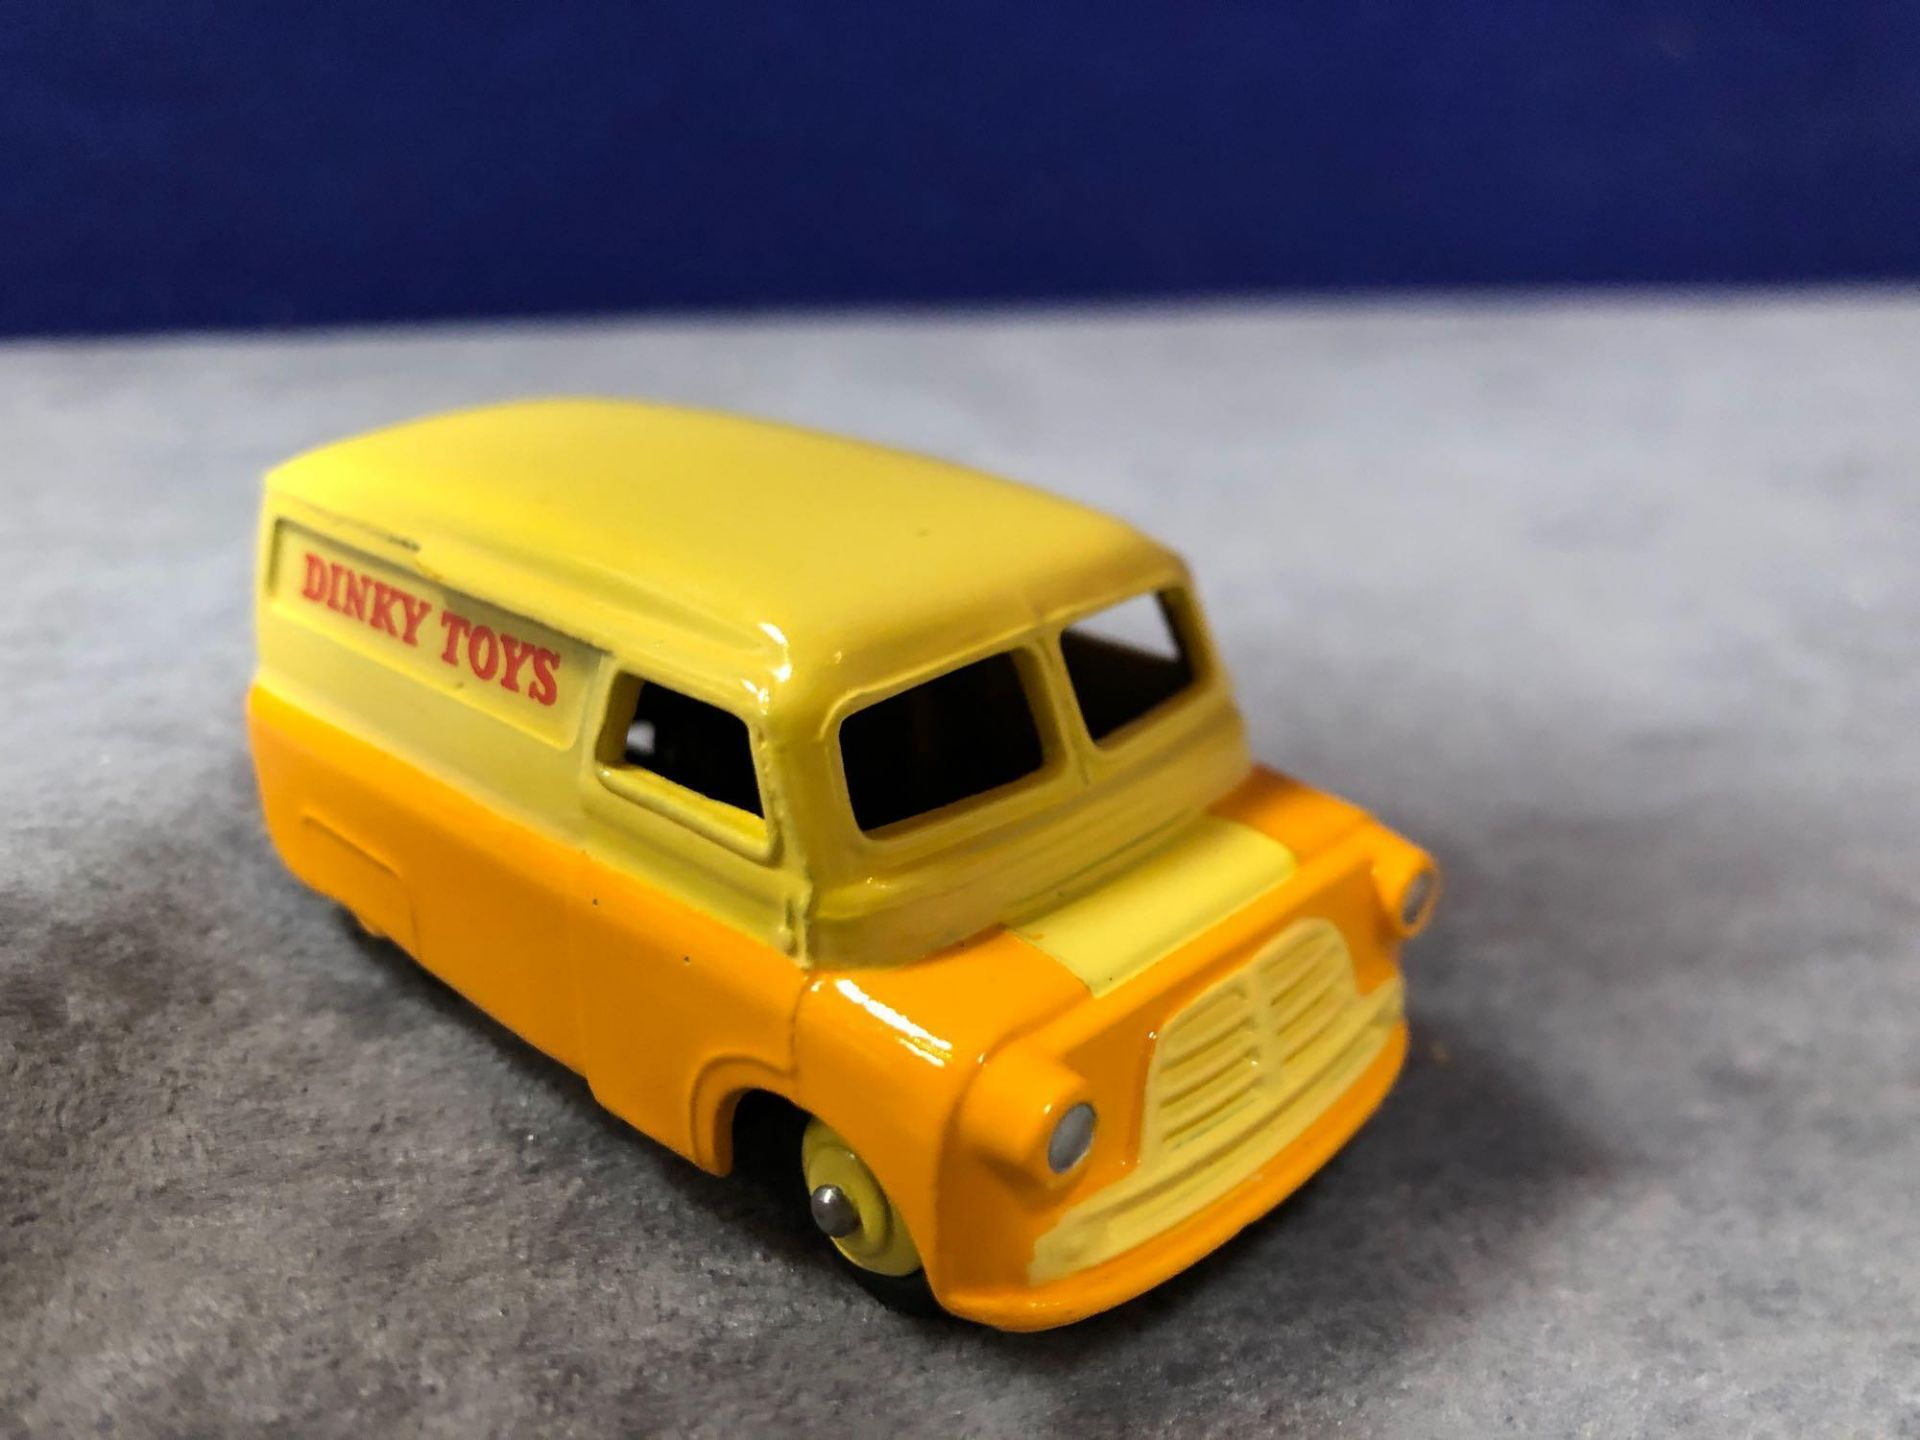 Dinky #482 Bedford Van Yellow/Orange (Dinky Toys) - Yellow Wheels and Silver Trim. 1956 - 1960 - Image 2 of 4